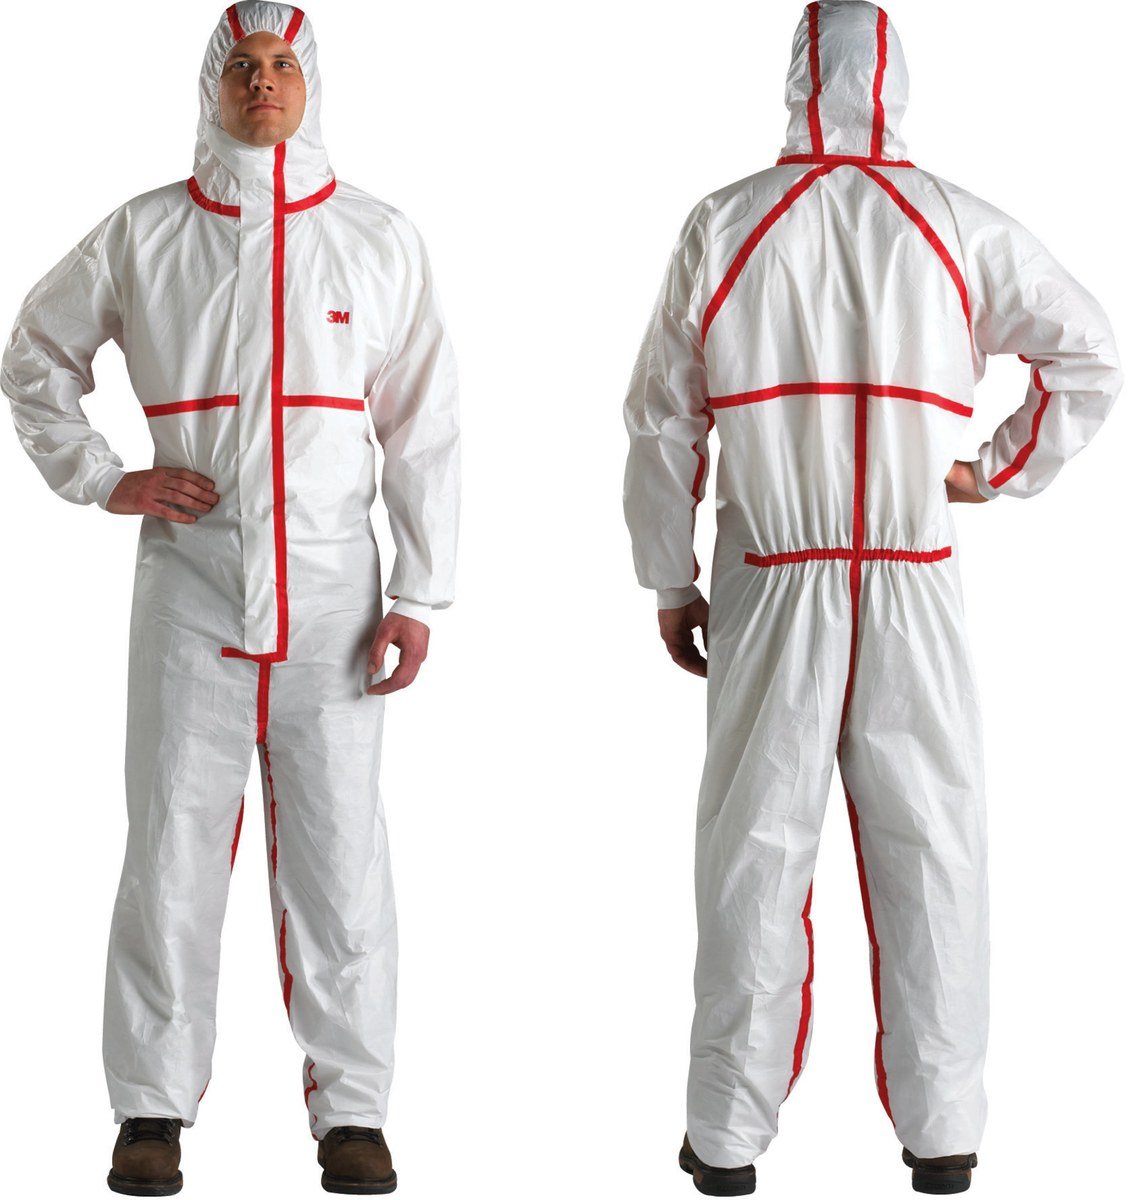 Protective Overall Coverall Suit Polypropylene Light Duty,for Laboratory,DIY Work,Workshop,Outdoor Working